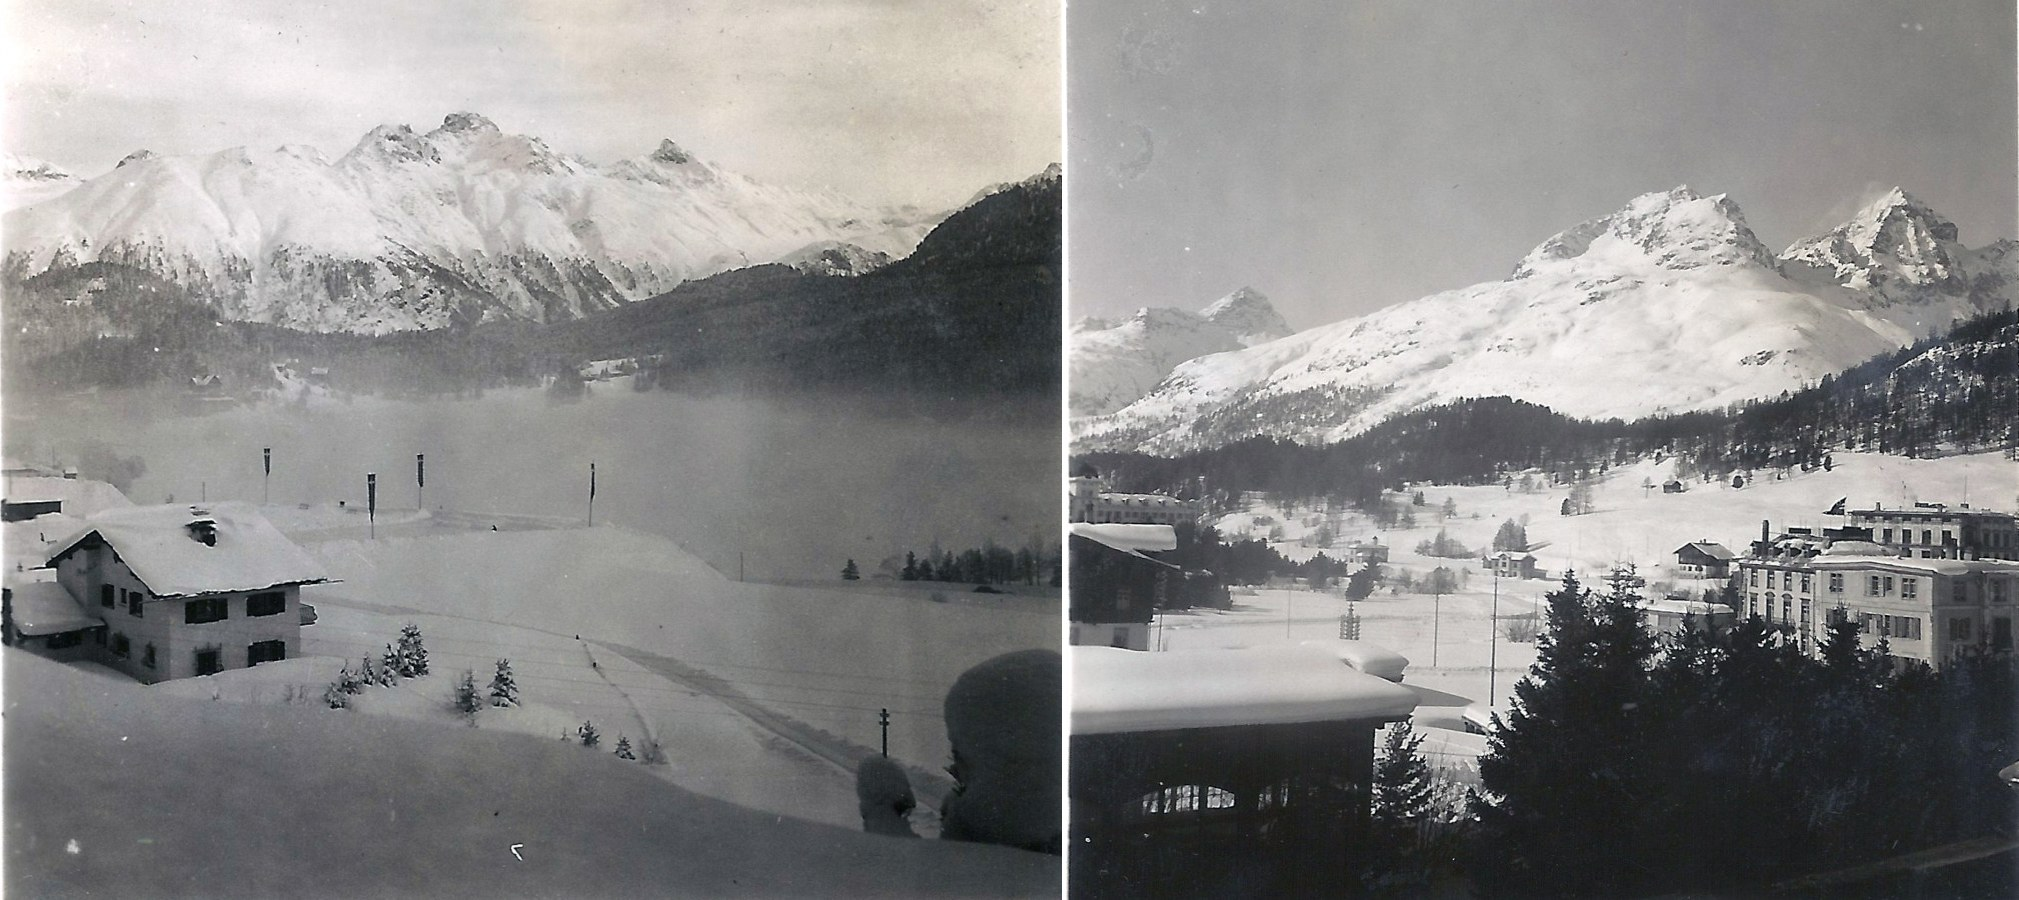 Photo: Views from the Stahlbad Hotel, St.Moritz Switzerland